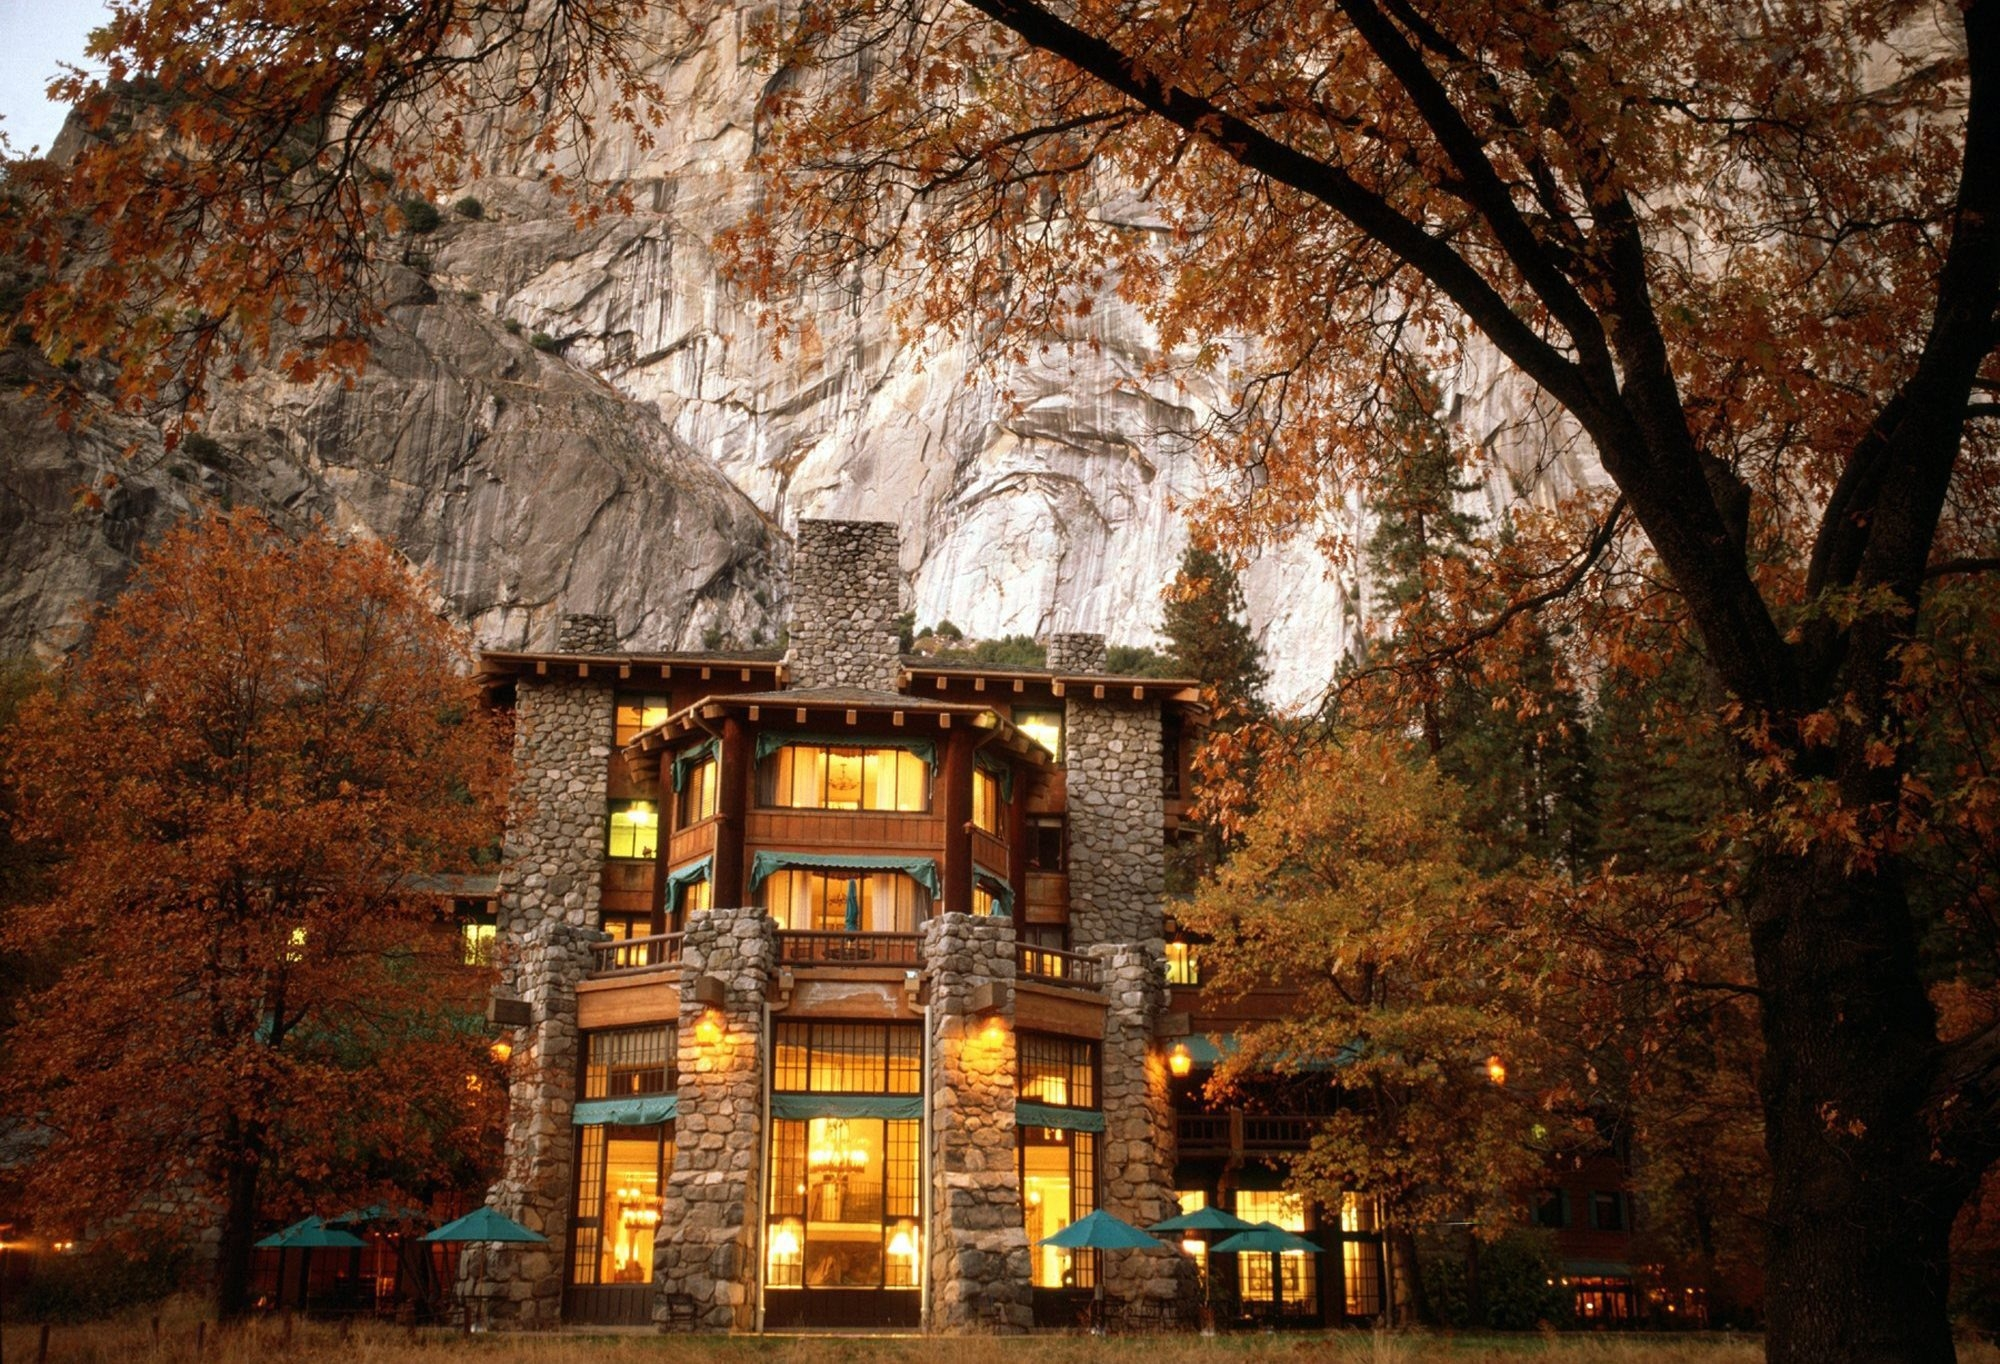 Ahwahnee Hotel in California's Yosemite National Park, a classic brand under hospitality giant Delaware North since 1993, is now the Majestic Yosemite Hotel under new concessionaire Aramark amid continuing legal dispute over trademark value.